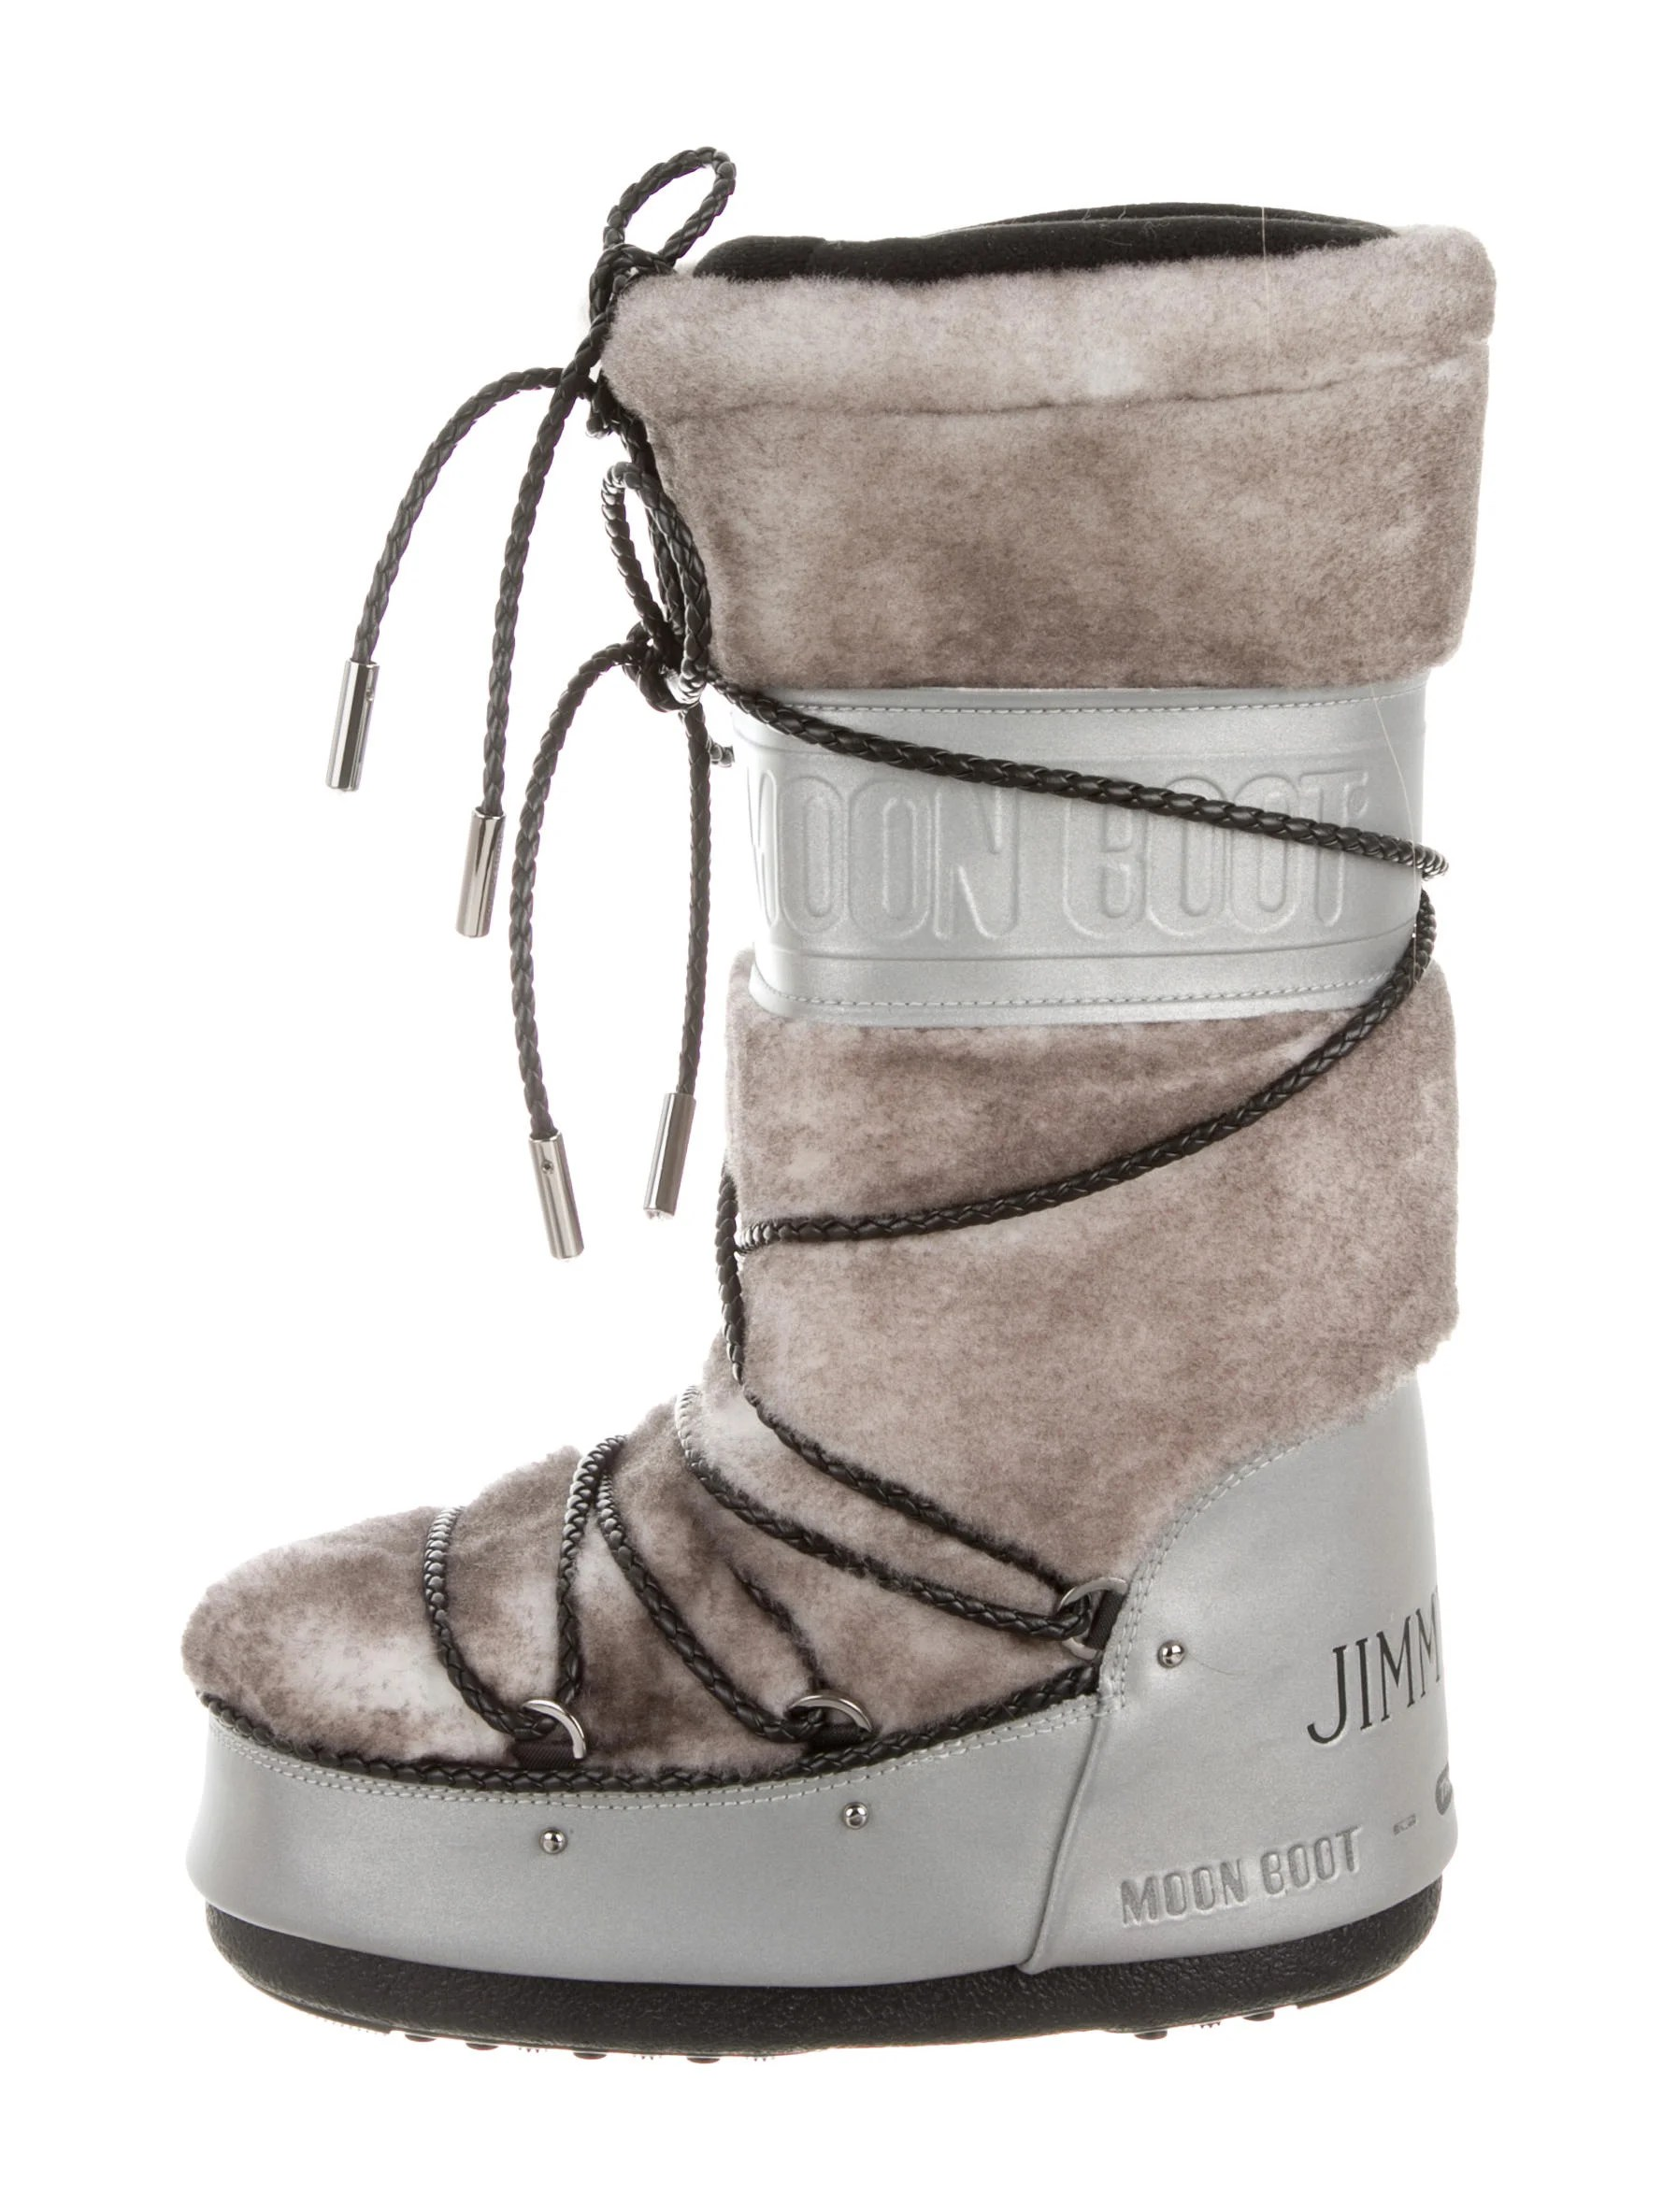 Jimmy Choo Moon Boots W Tags Shoes Jim38171 The